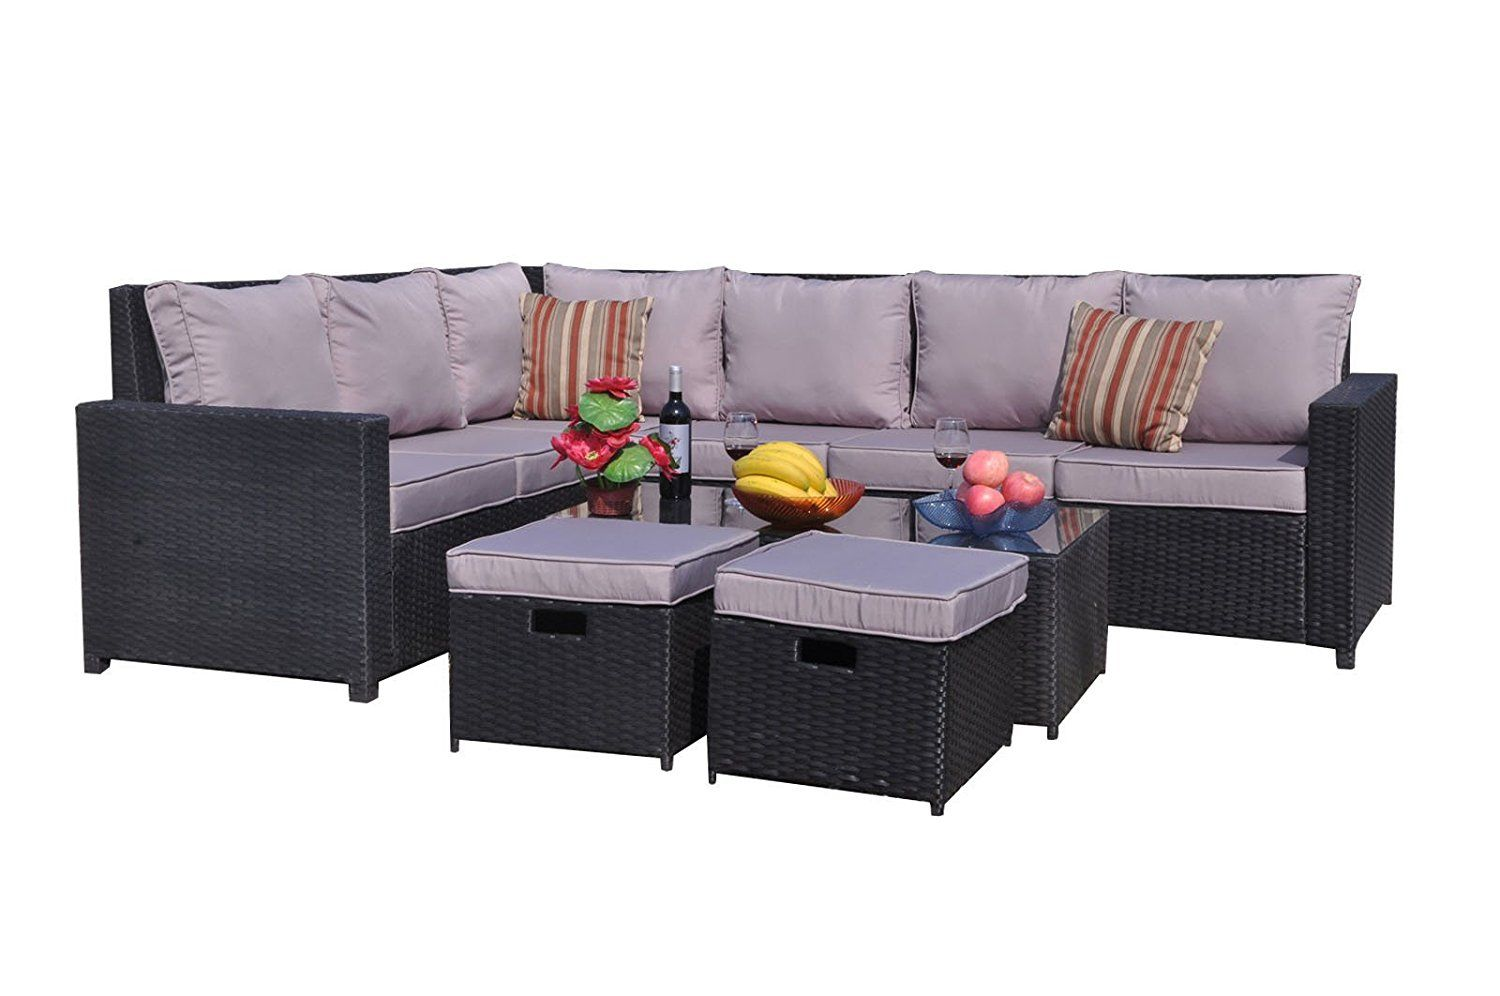 Yakoe New Conservatory Modular 8 Seater Rattan Corner Sofa Set Black Find Out More At The Image Link Garden Rattan Corner Sofa Corner Sofa Set Furniture